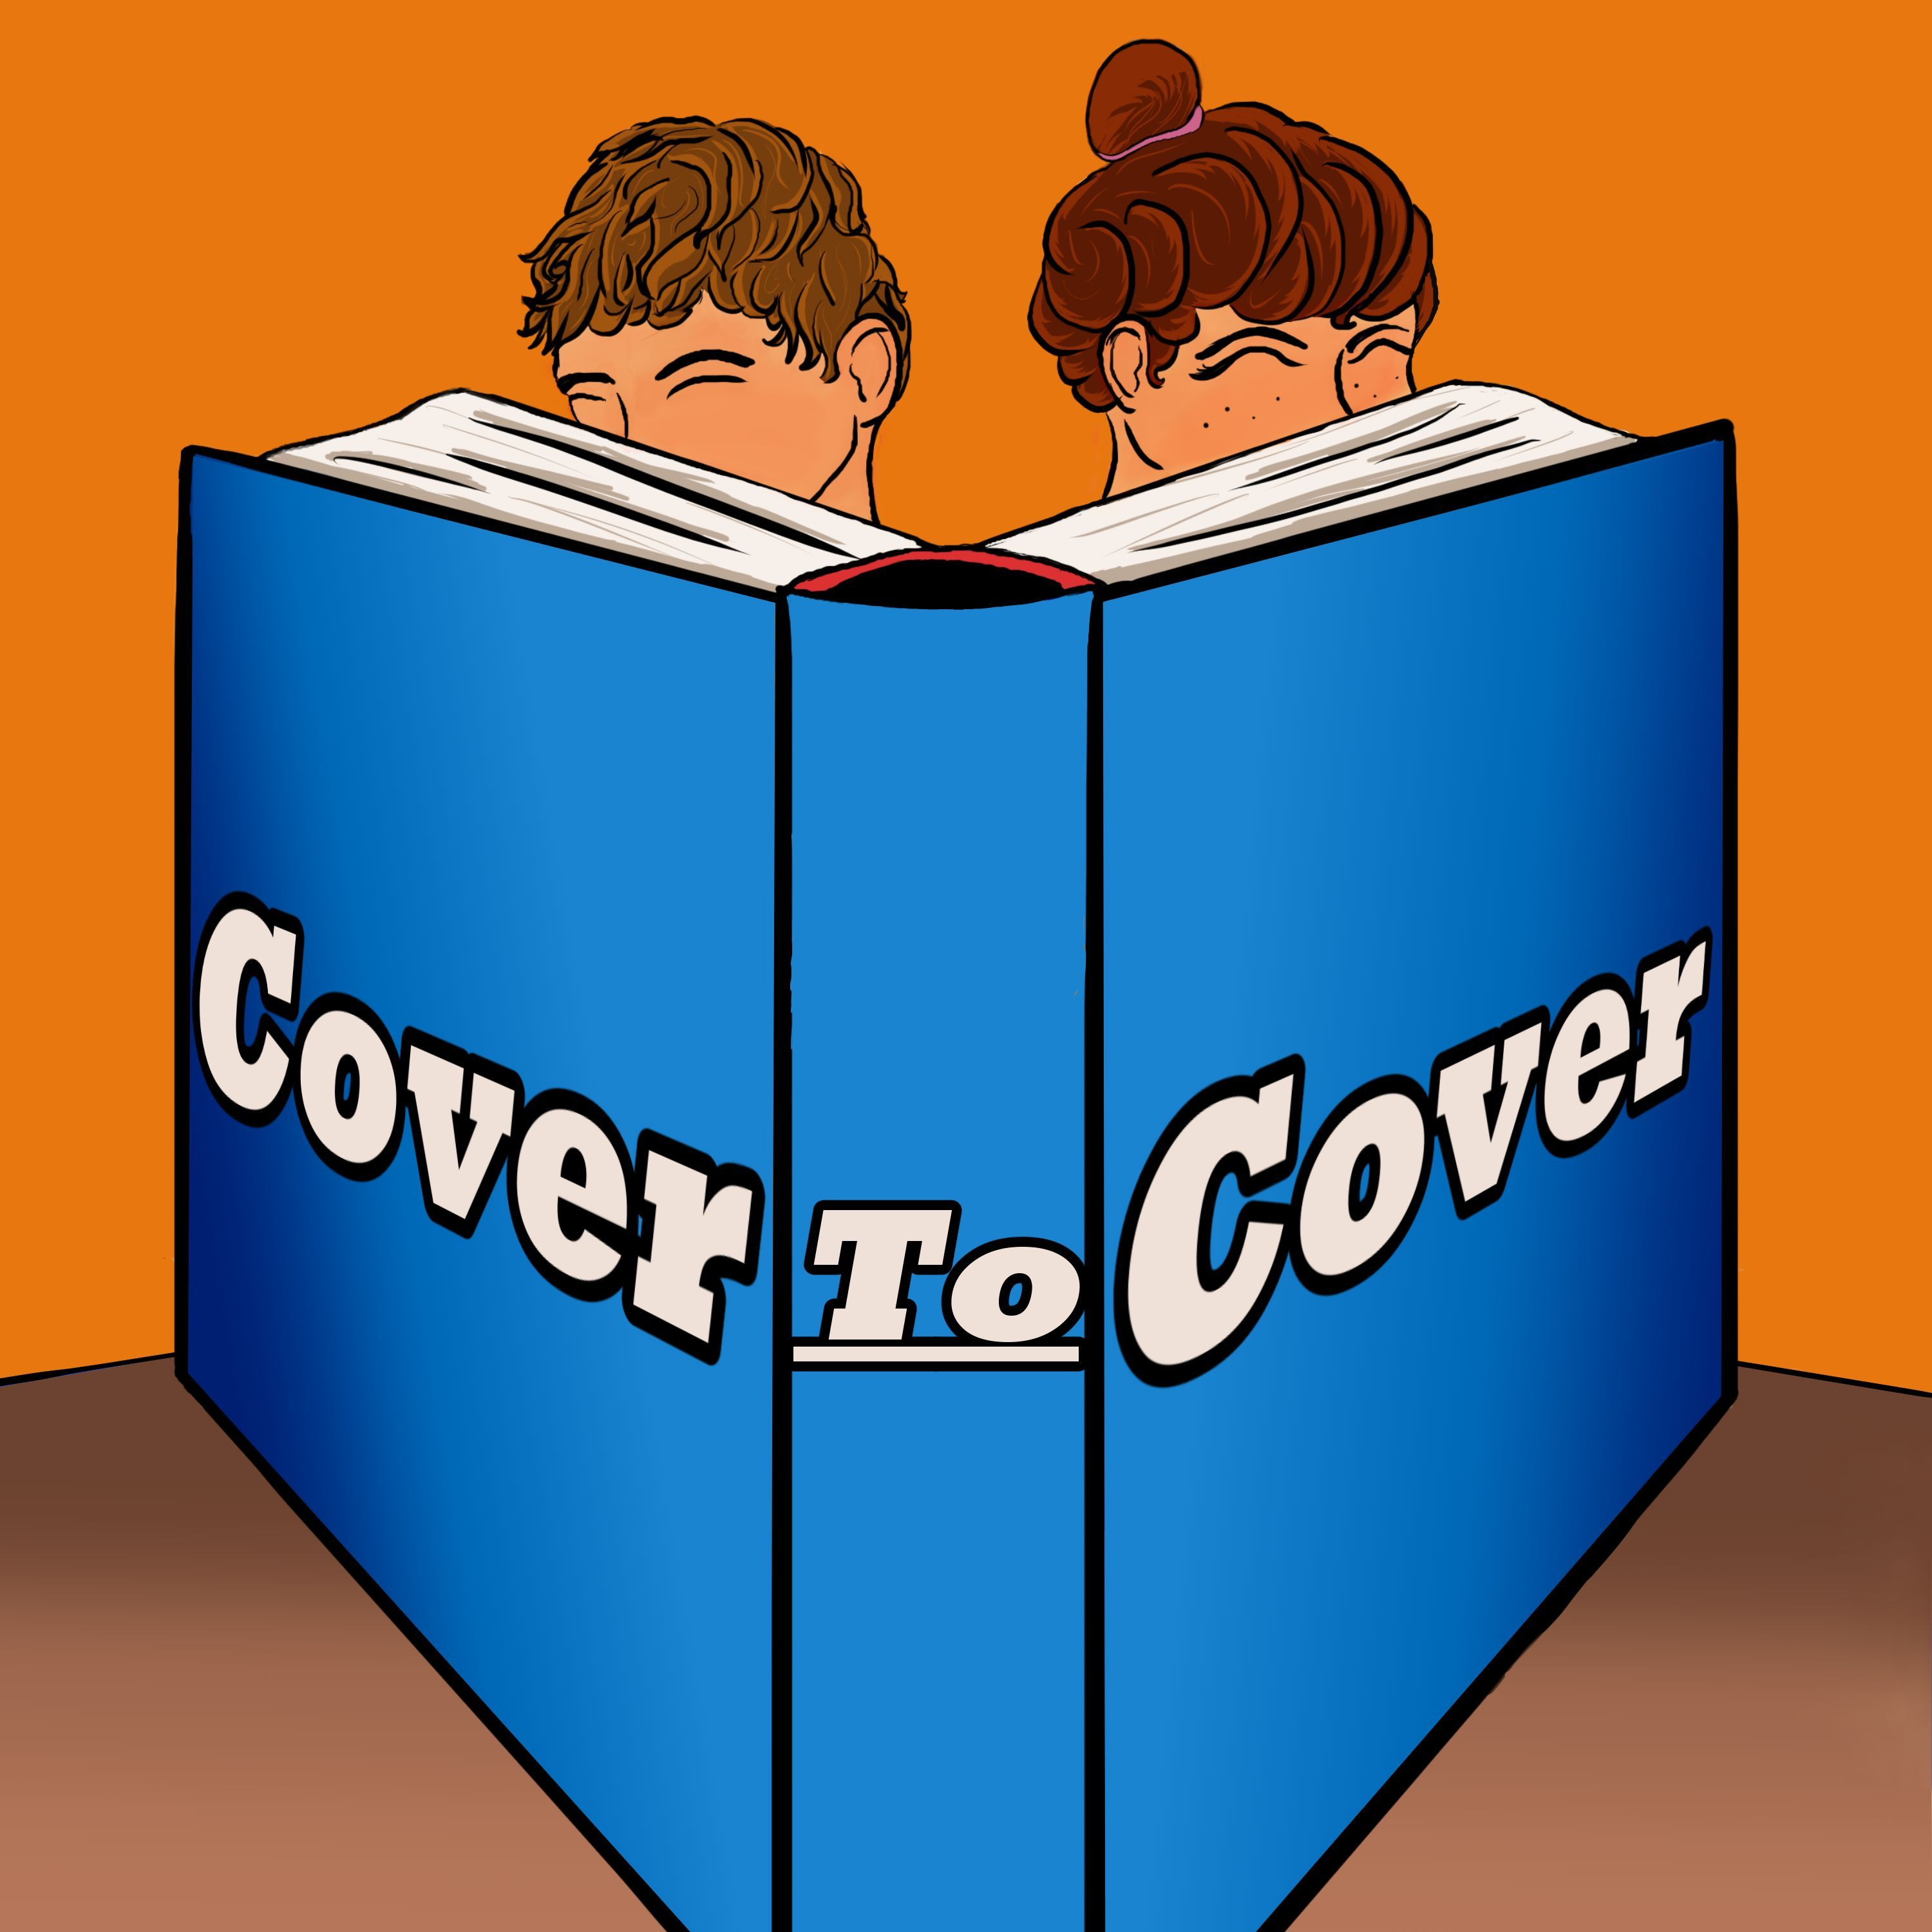 Cover to Cover Intro